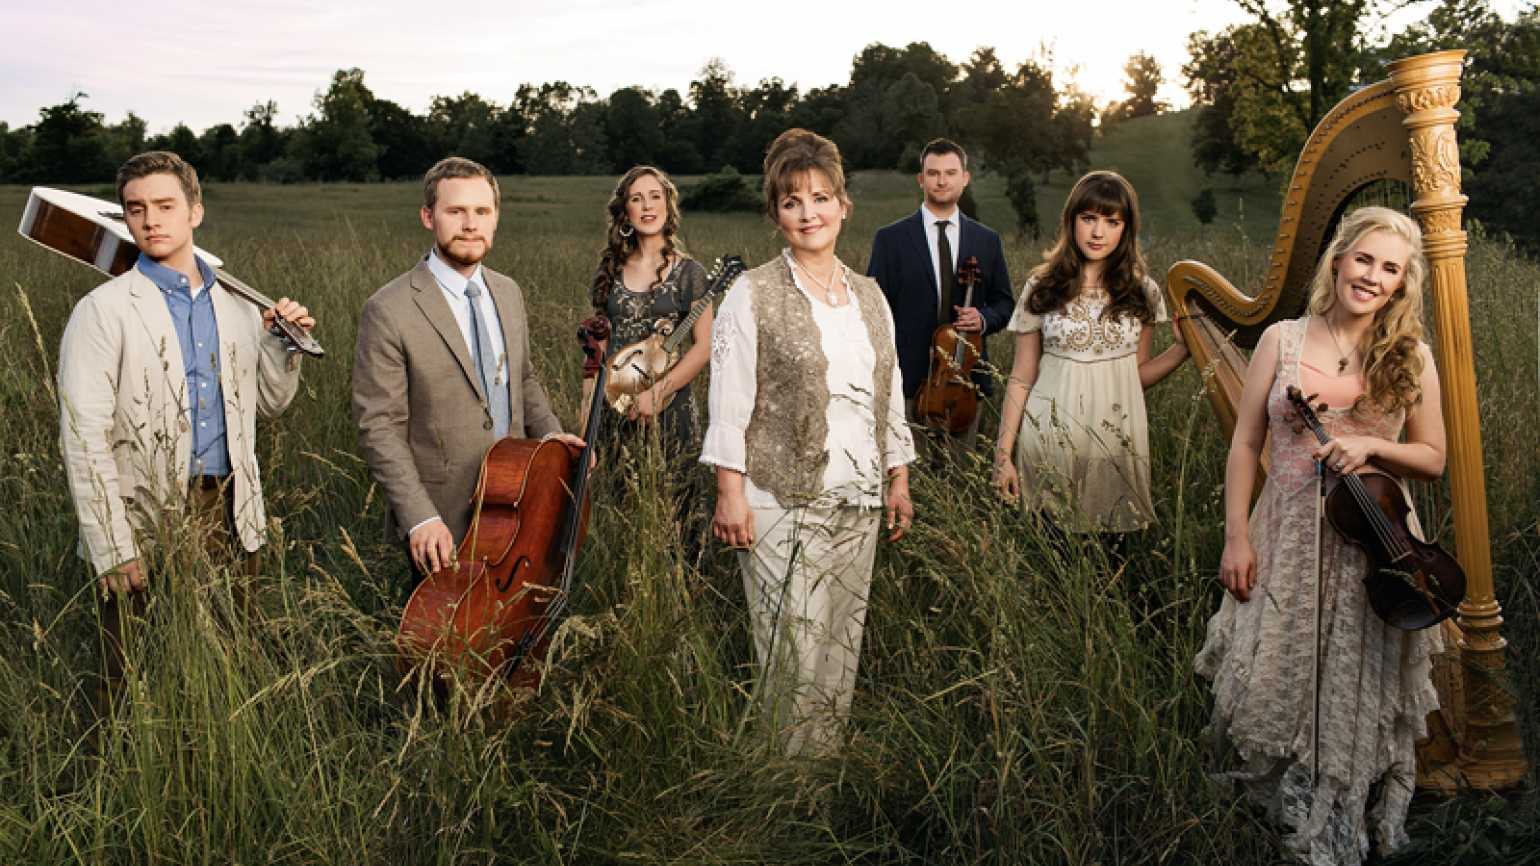 Robin Donica Wolaver with her family, the members of the Annie Moses Band